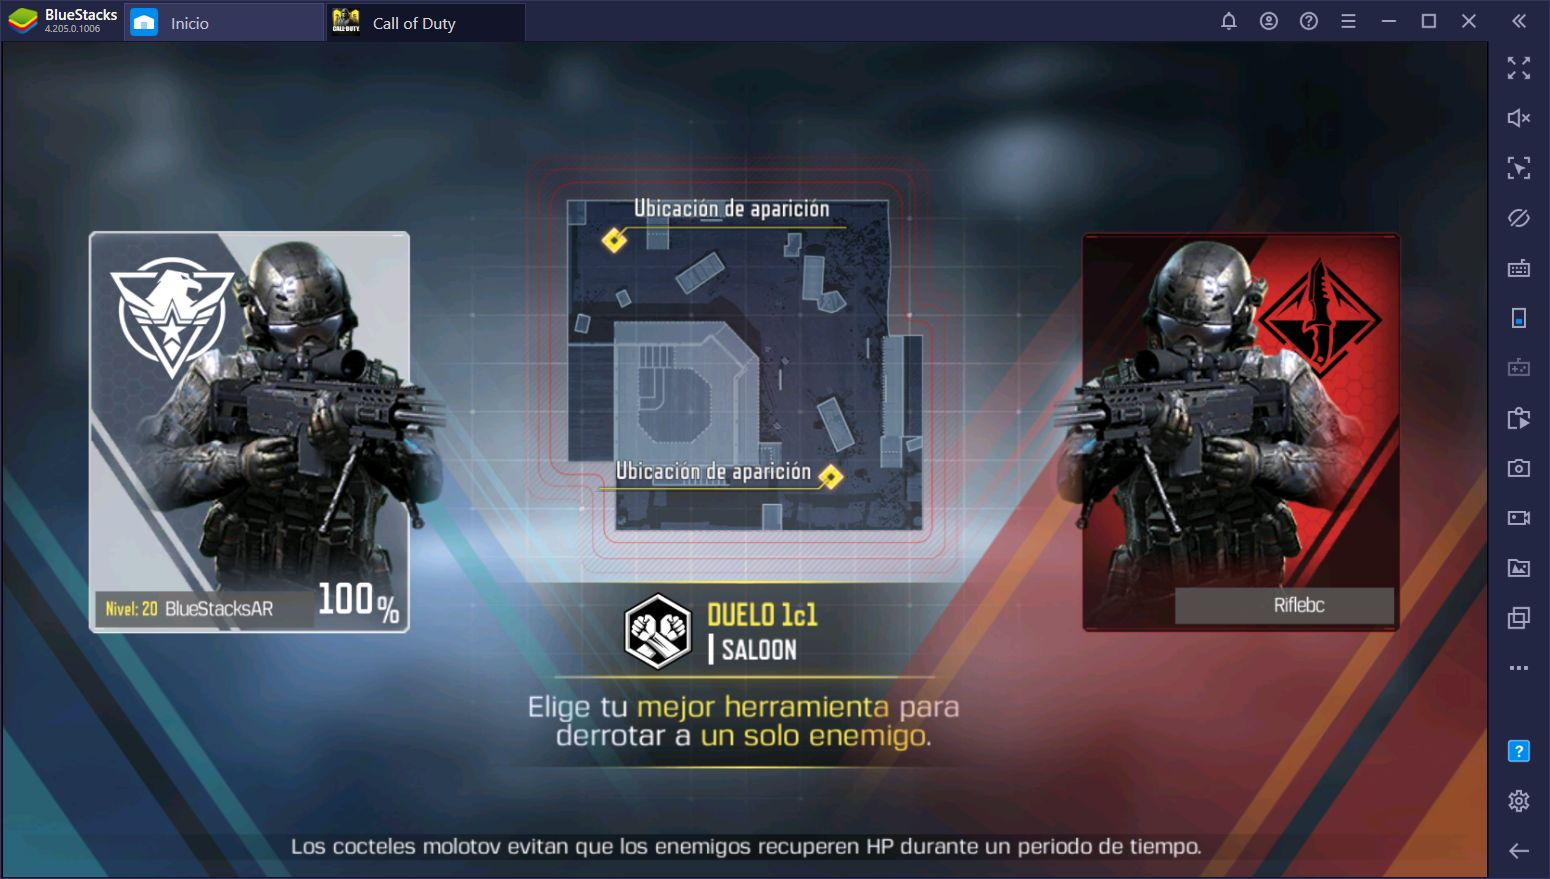 Call of Duty: Mobile Season 6 – El Gulag, Duelo 1c1, y la Nueva Clase Para BR